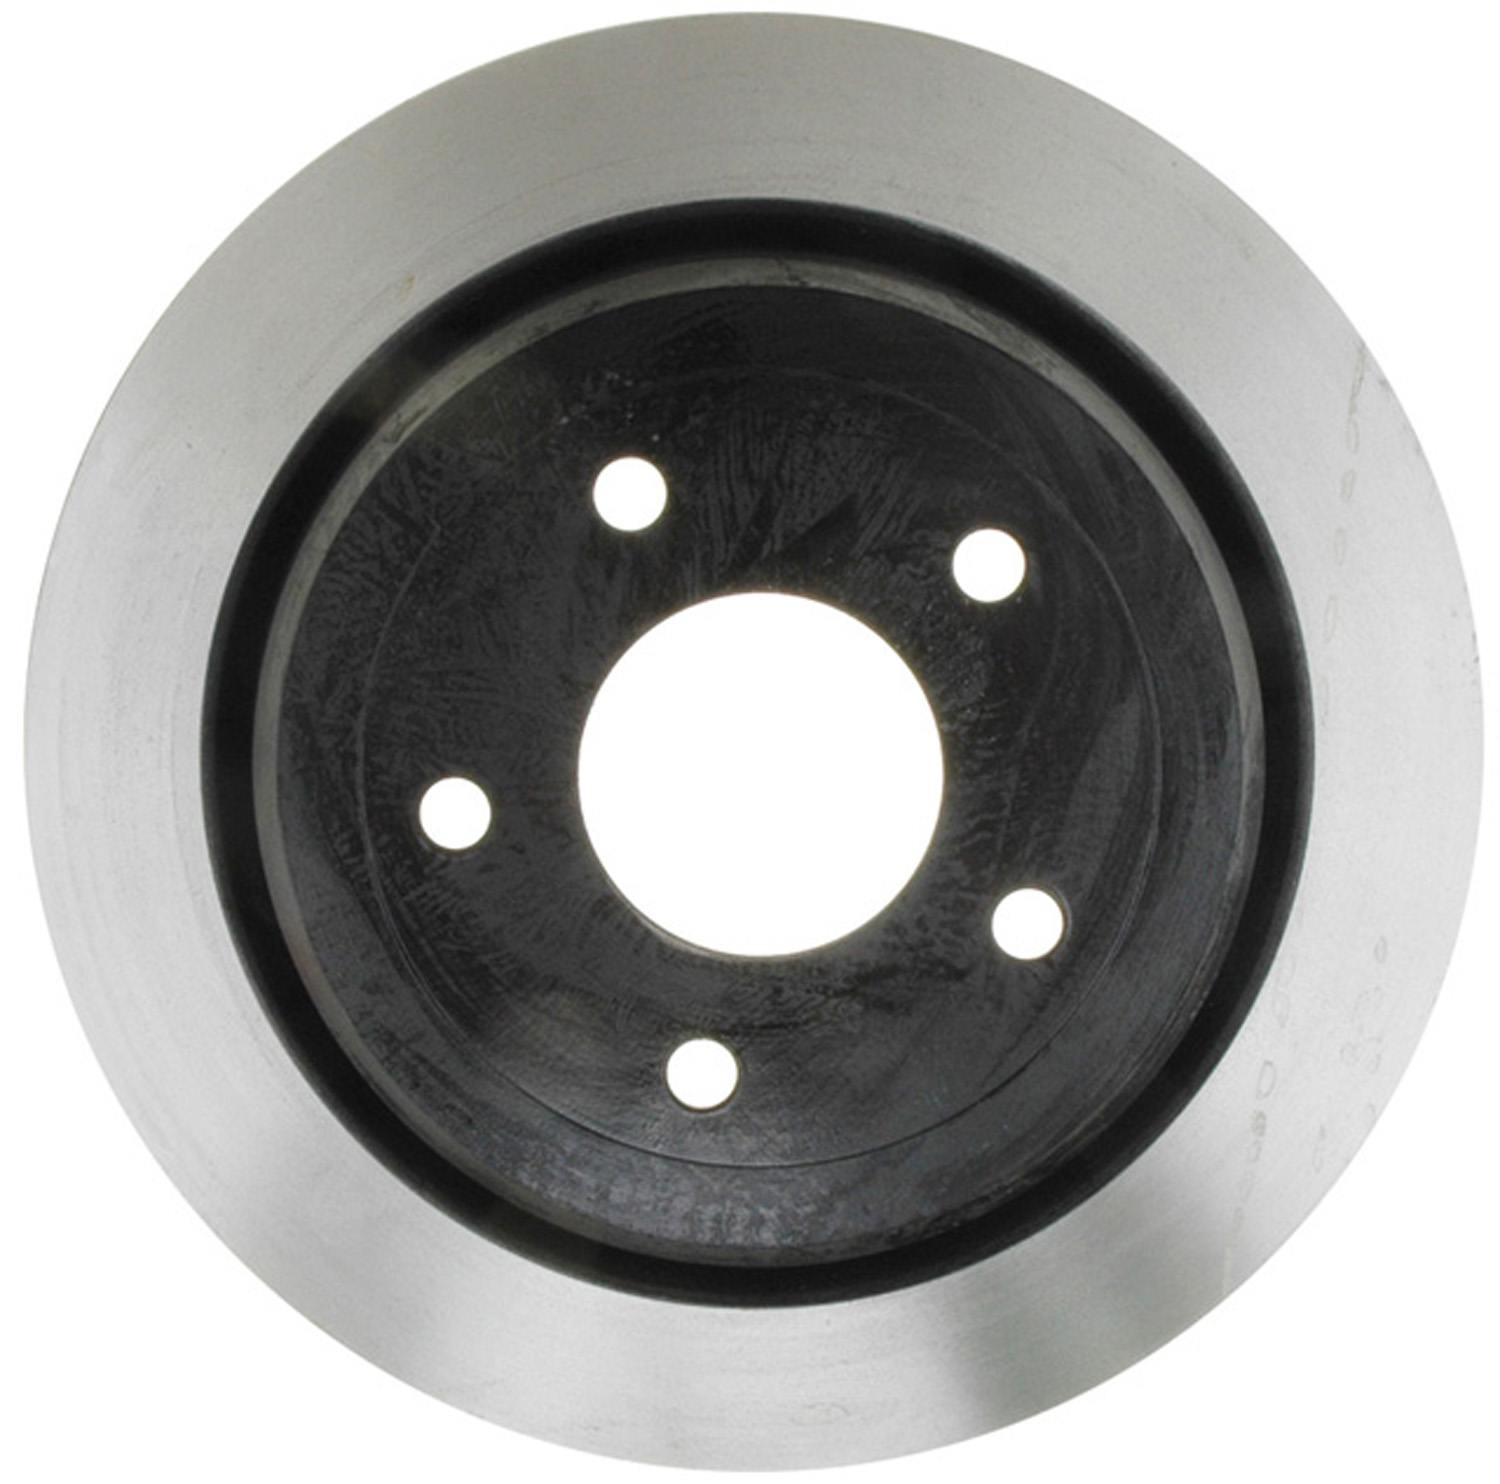 ACDELCO PROFESSIONAL BRAKES - Disc Brake Rotor (Rear) - ADU 18A2333